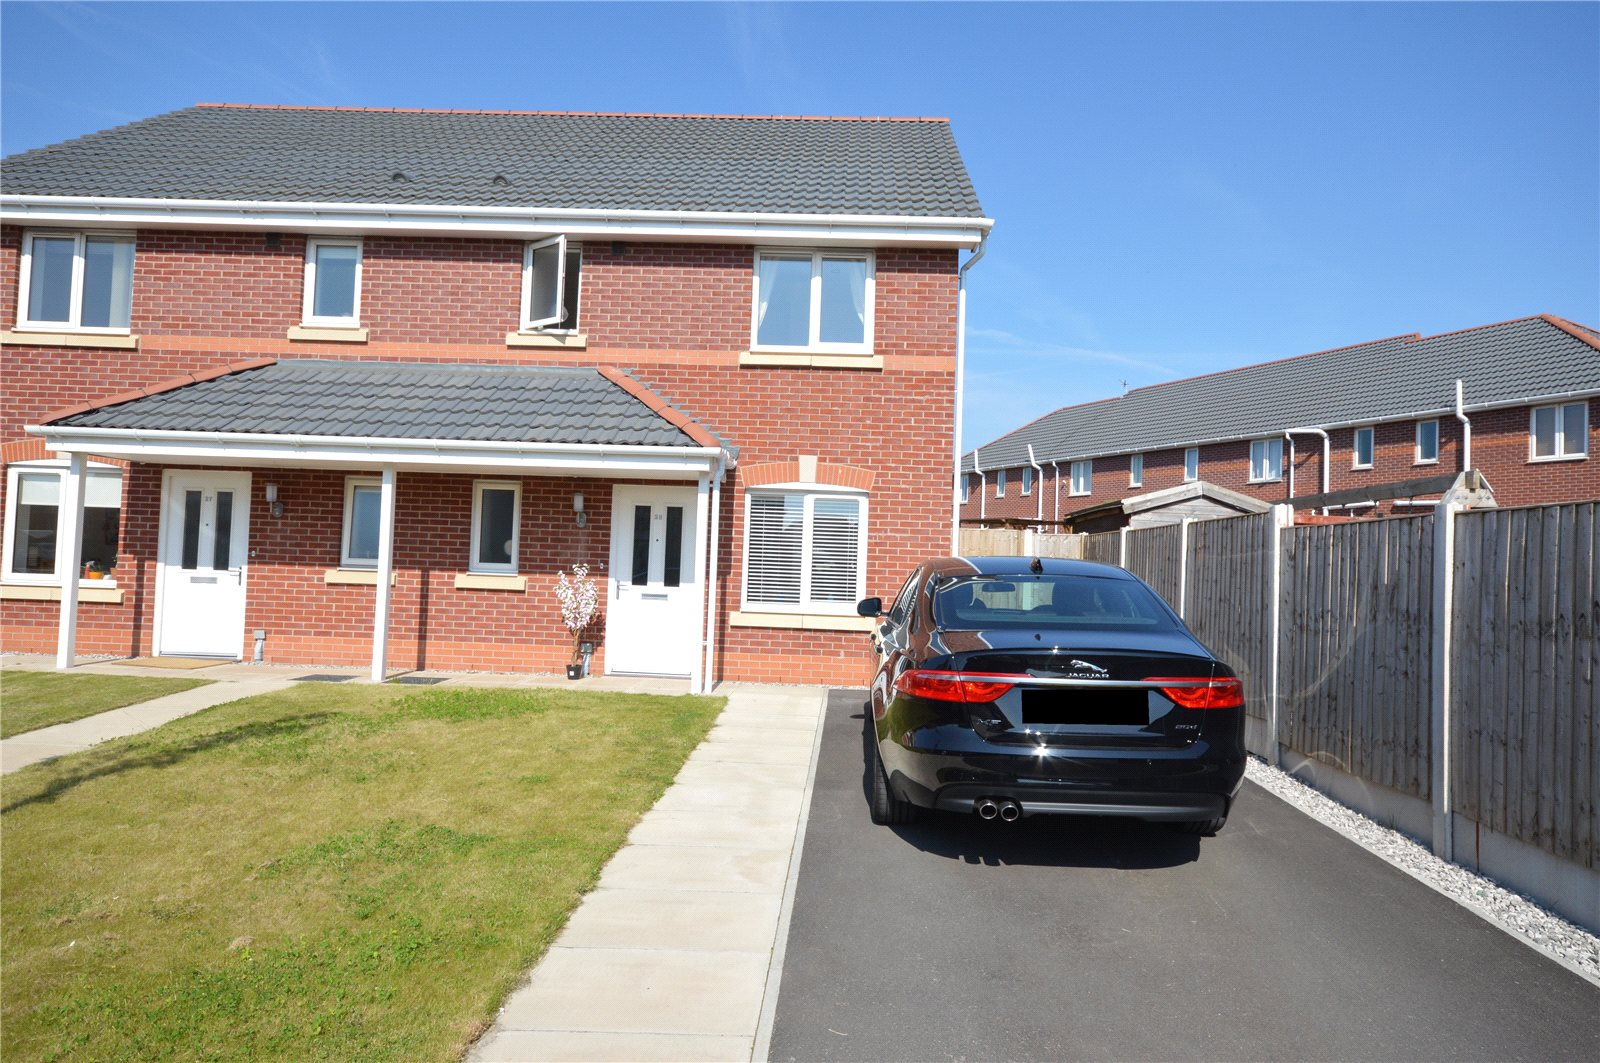 3 Bedrooms Semi Detached House for sale in Otway Close, Garston, Liverpool, L19